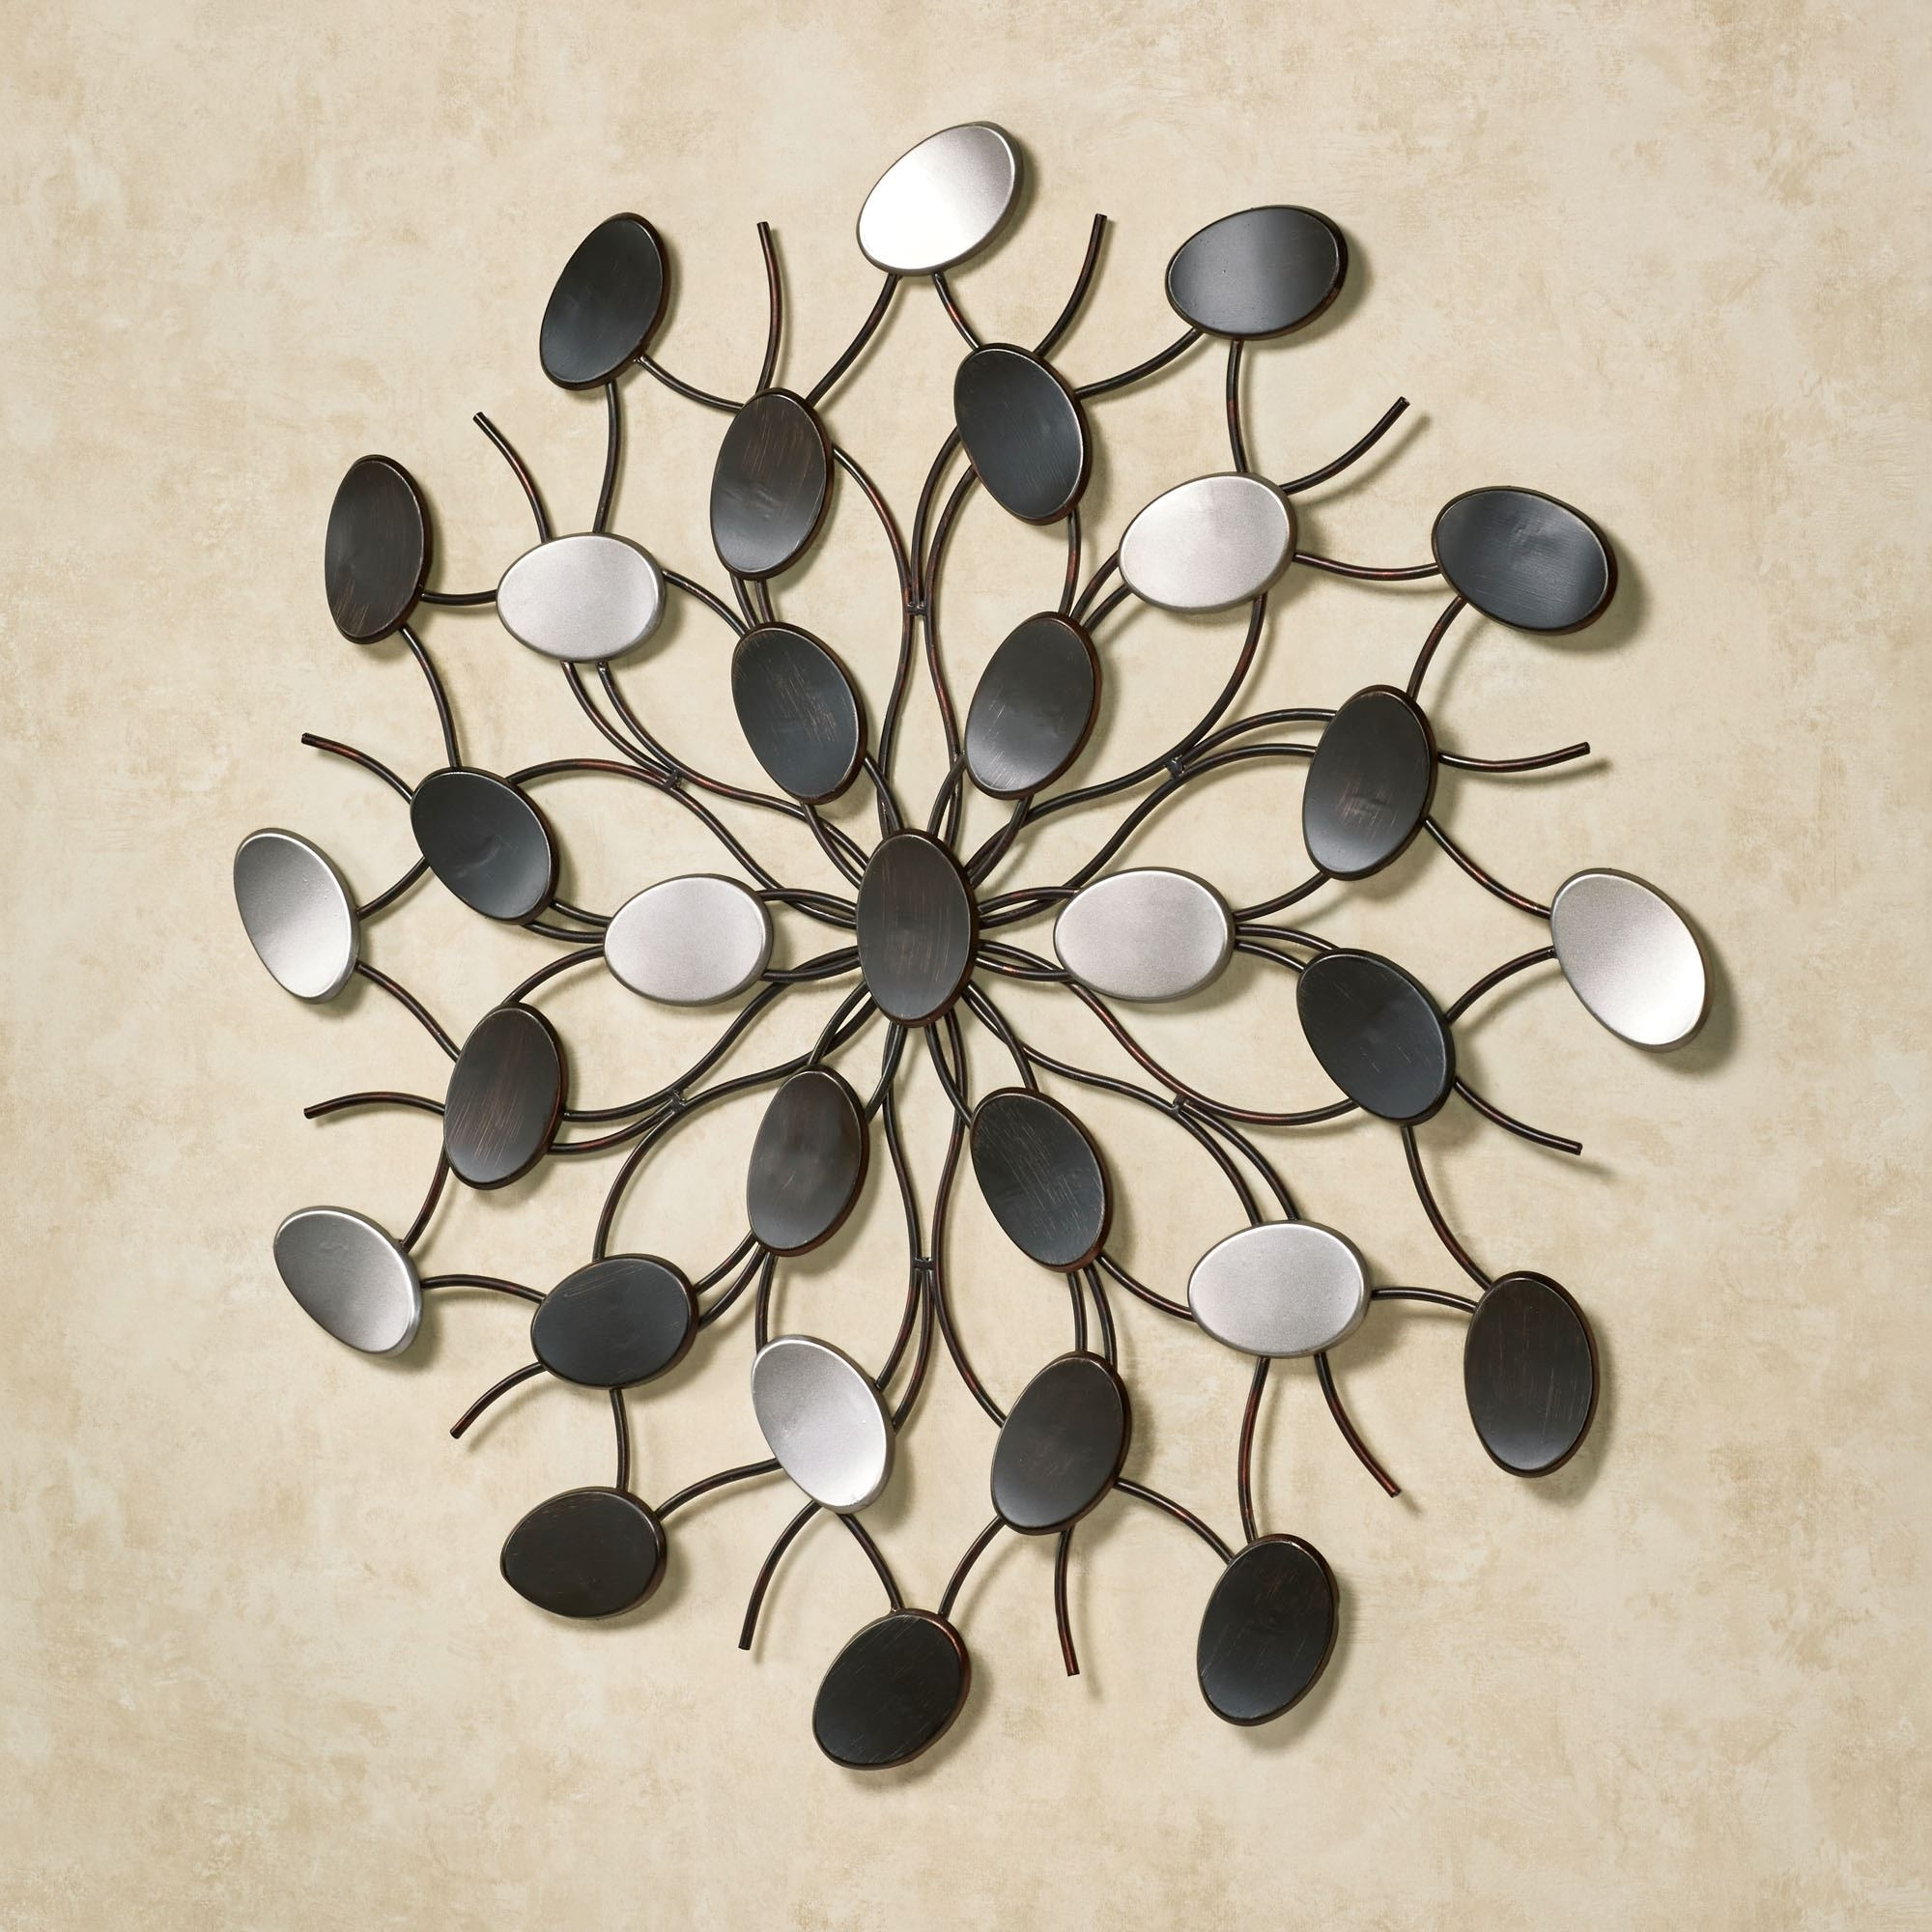 Current Radiant Petals Abstract Metal Wall Art Inside Wall Art Metal (View 7 of 20)